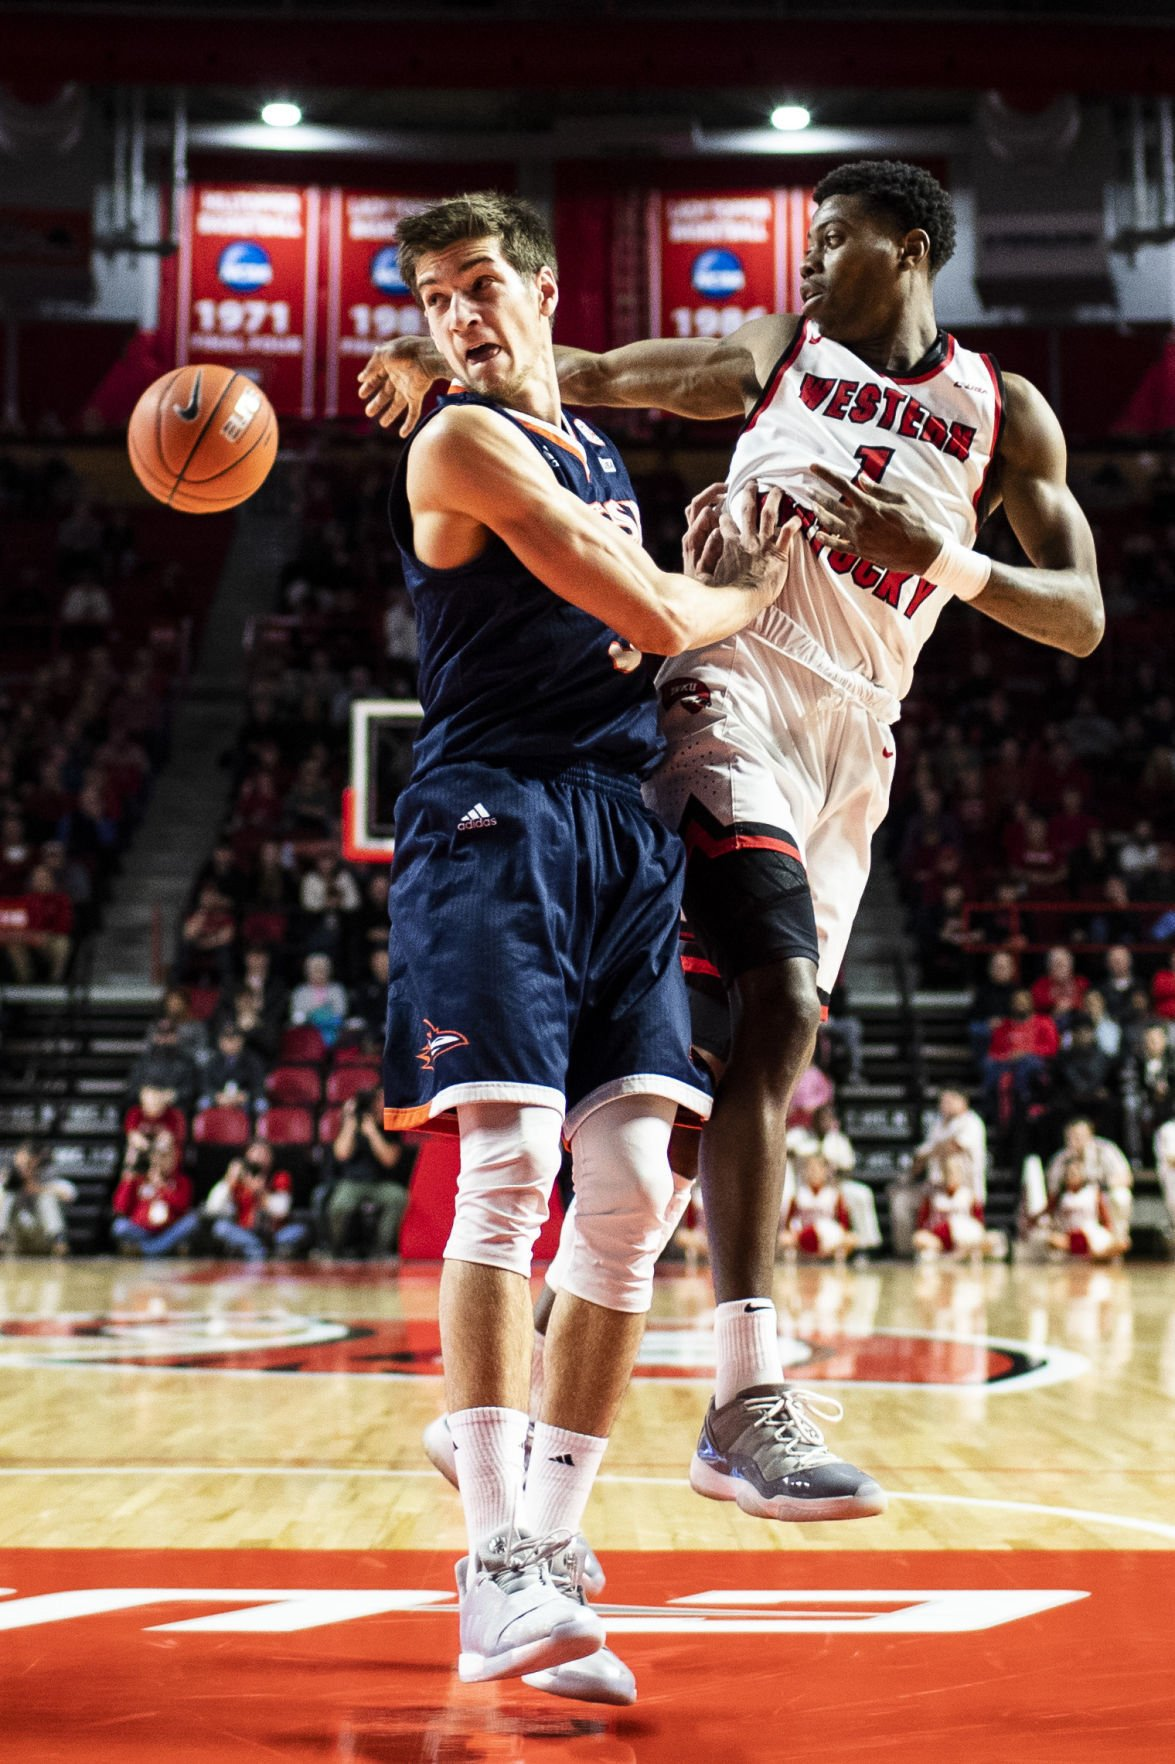 WKU defeats UTSA 96-88 in overtime